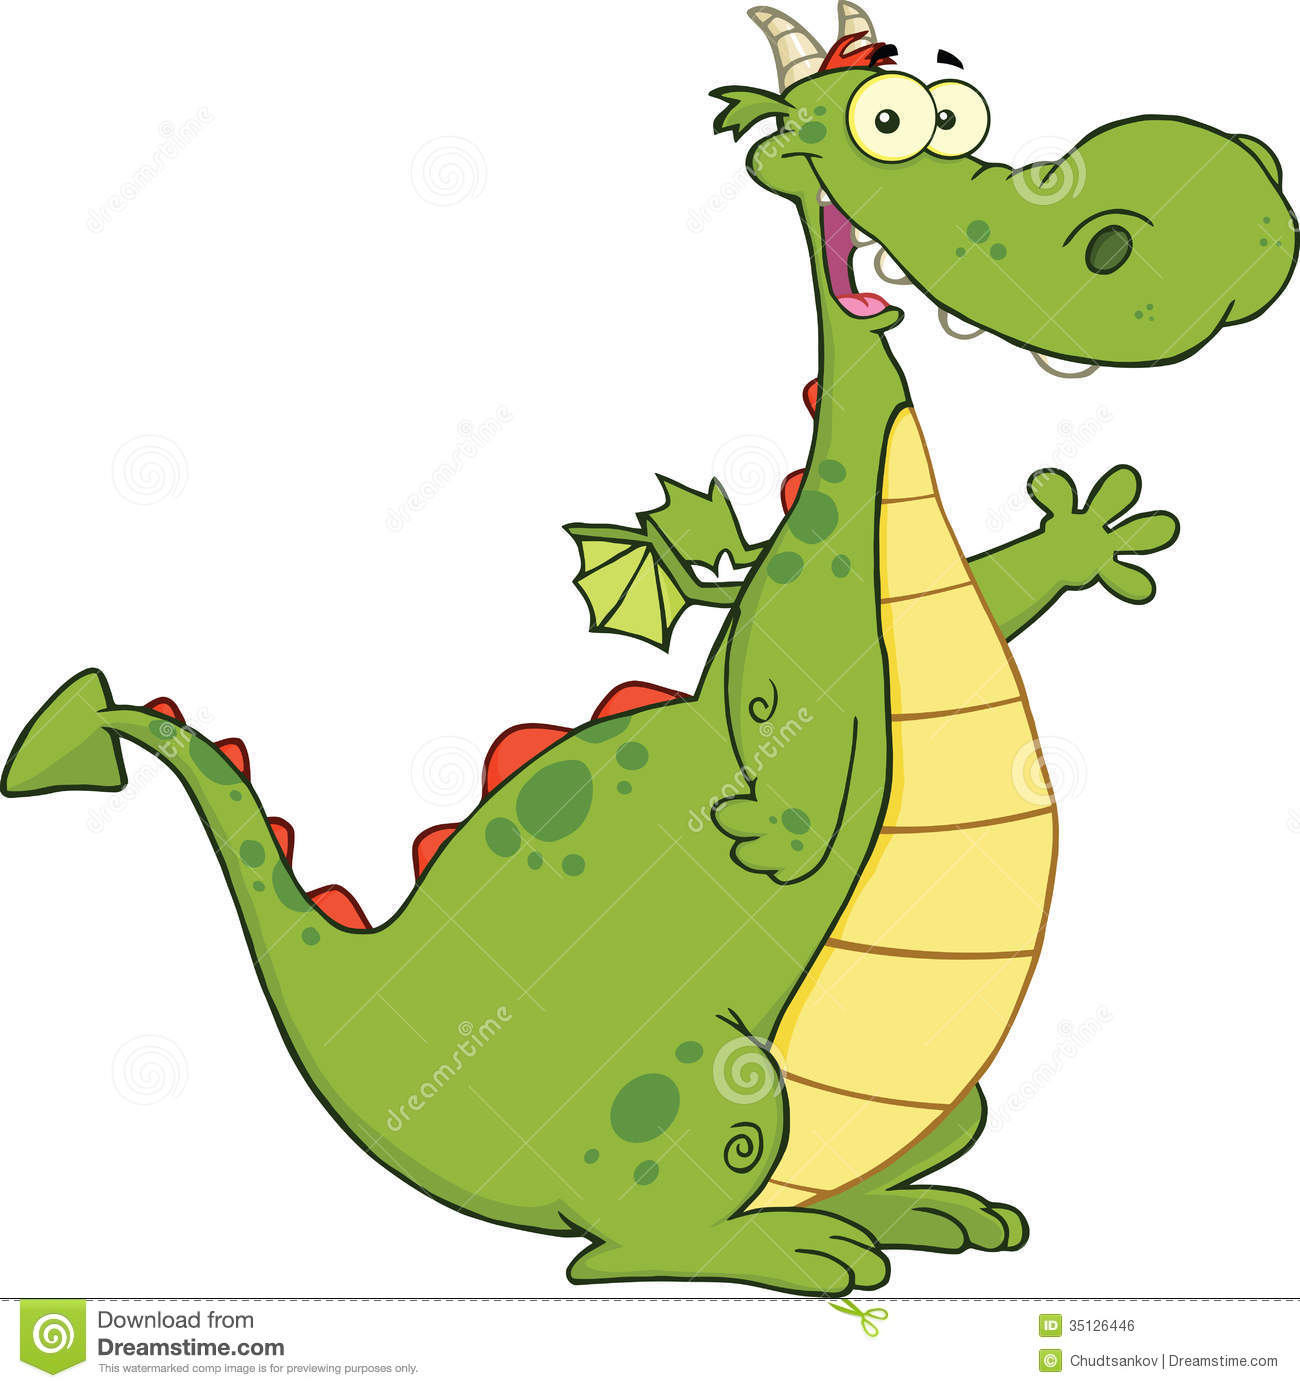 Cartoon Characters Green : Green dragon cartoon character waving for greeting royalty